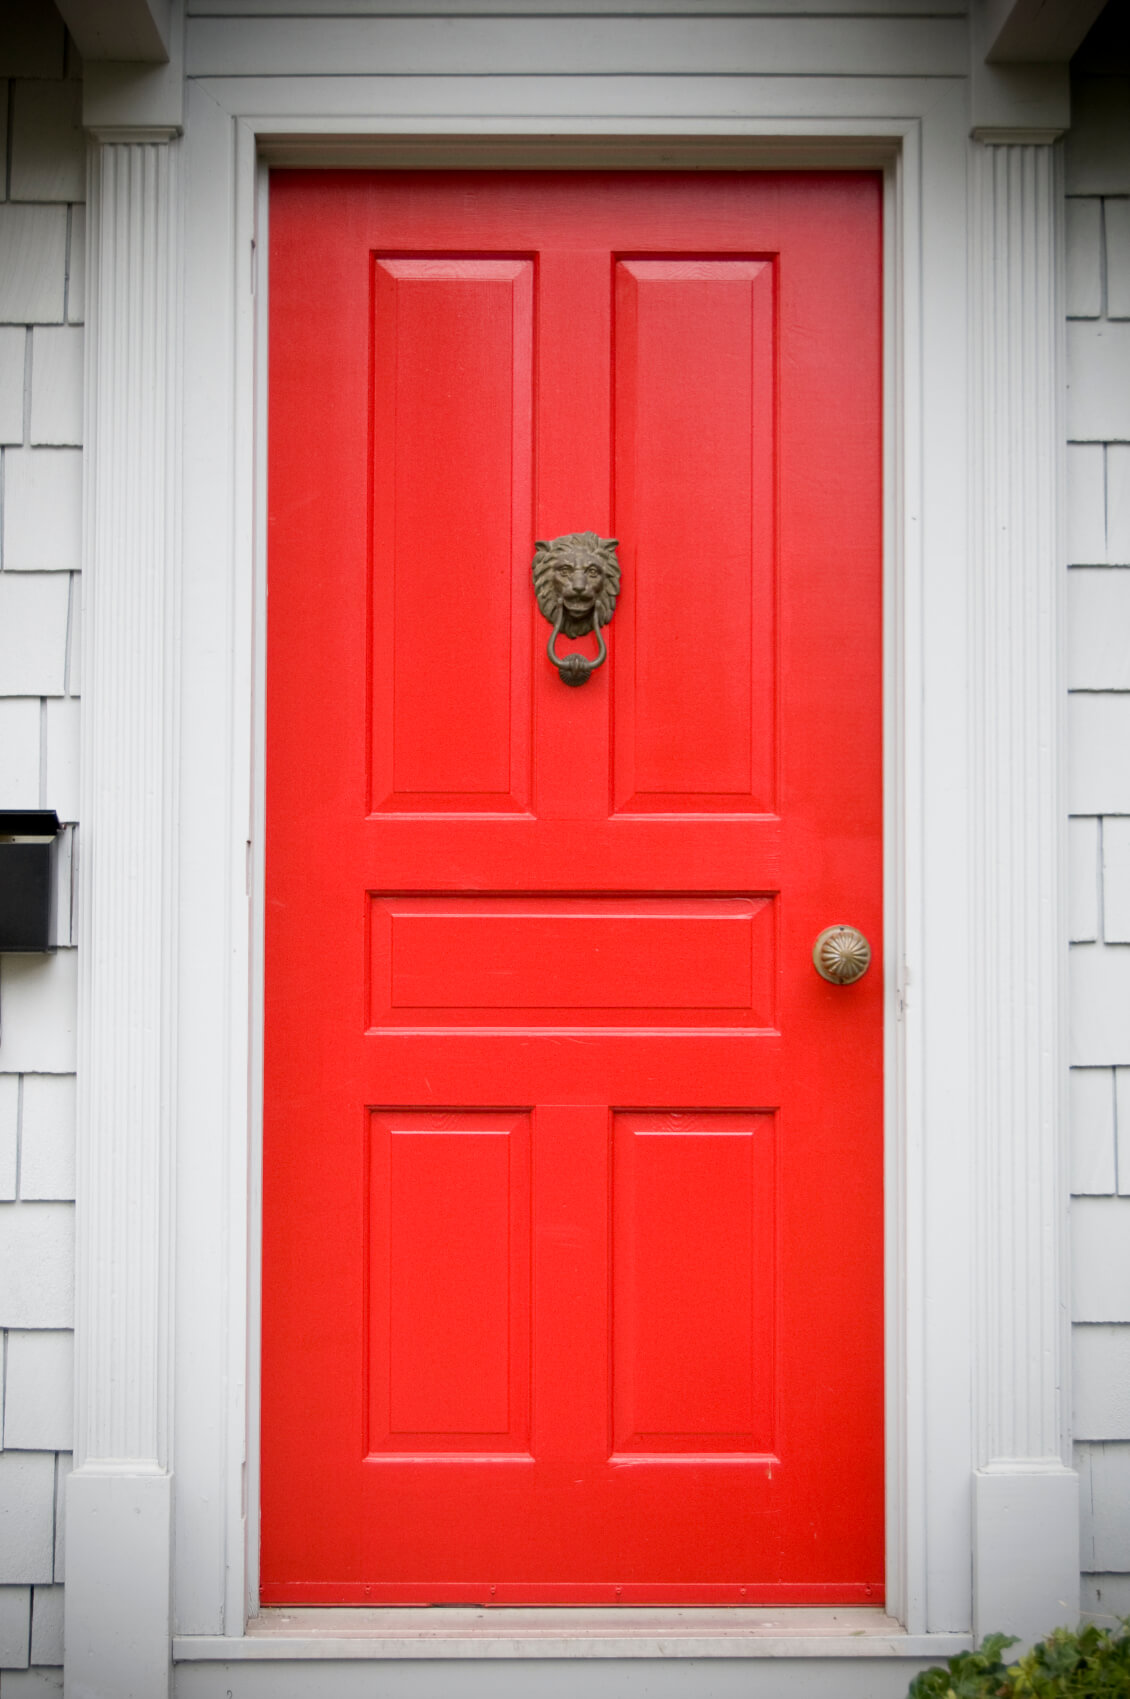 35 different red front doors many designs pictures off white molding and framing support this bright red door which has five rectangular rubansaba